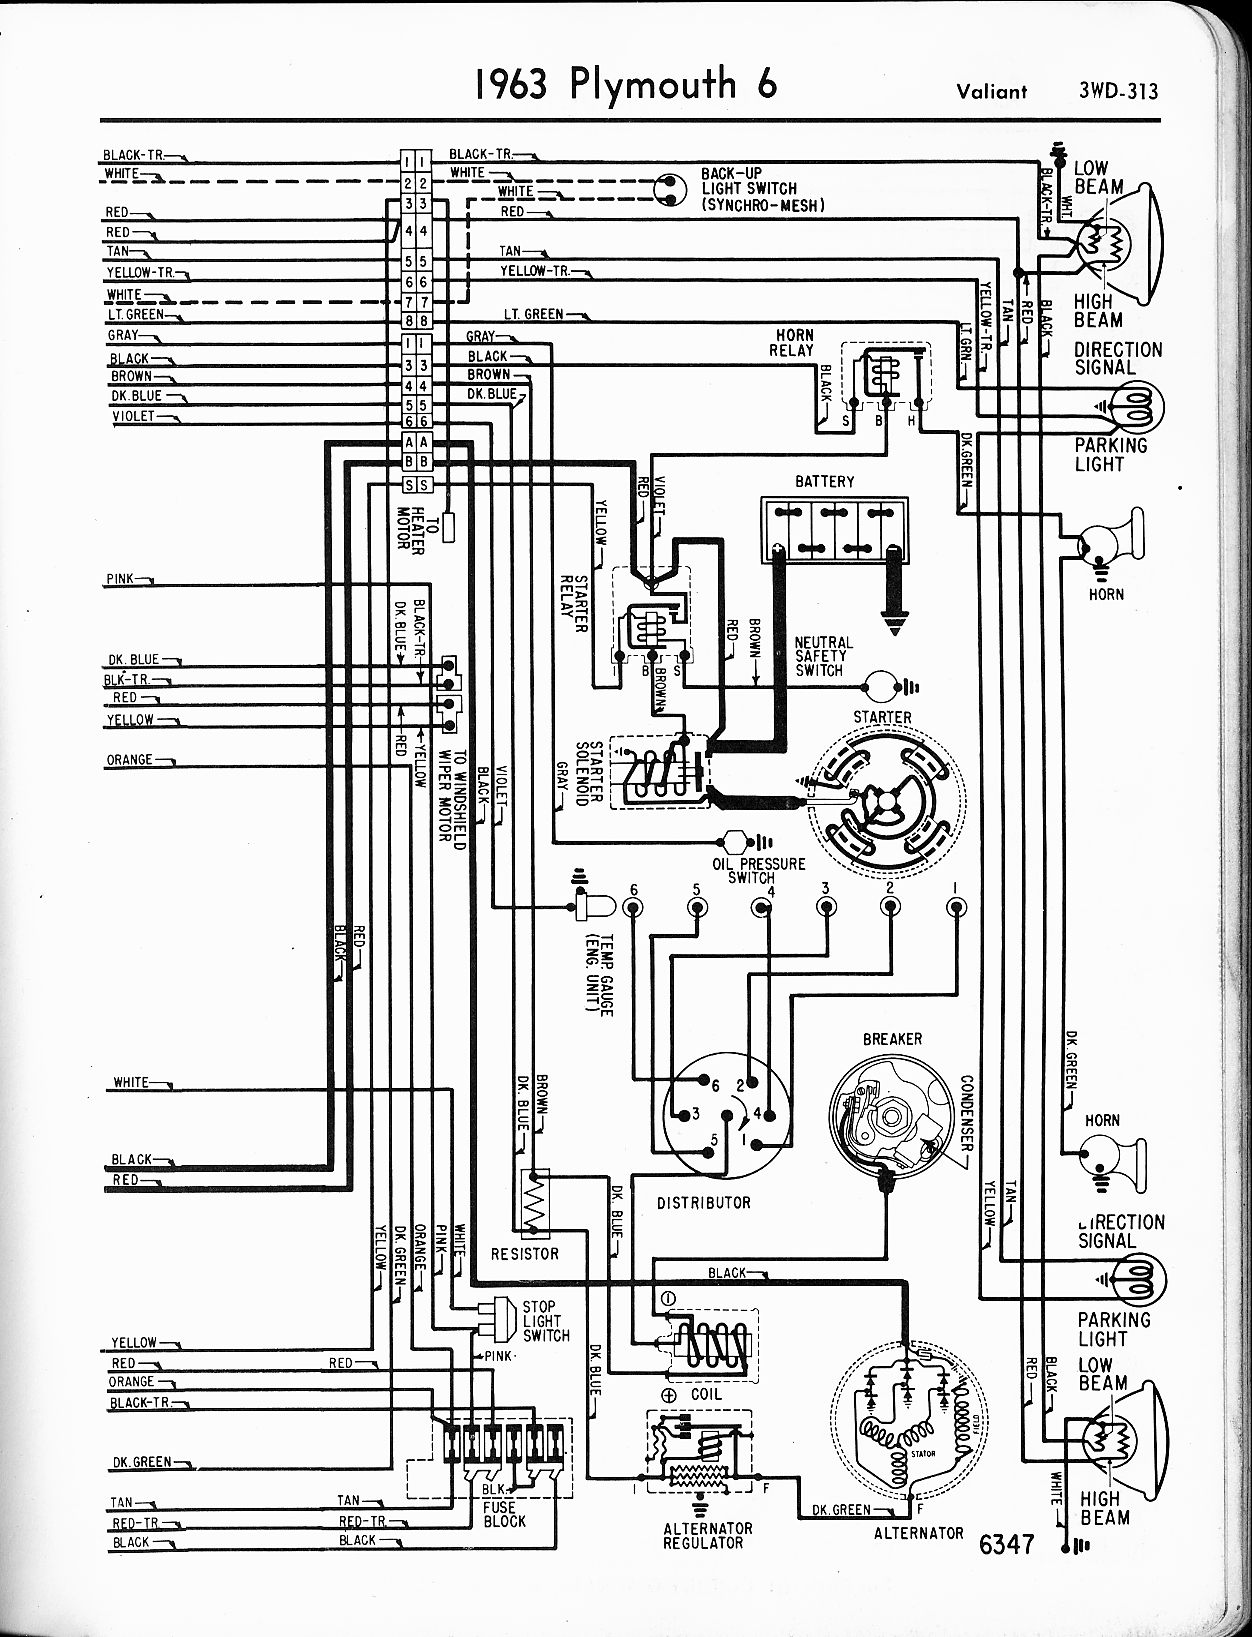 1975 Plymouth Valiant Wiring Diagram Free Download Trusted Vega Diagrams 1954 Mopar Library Rh Svpack Co Chevy Nova